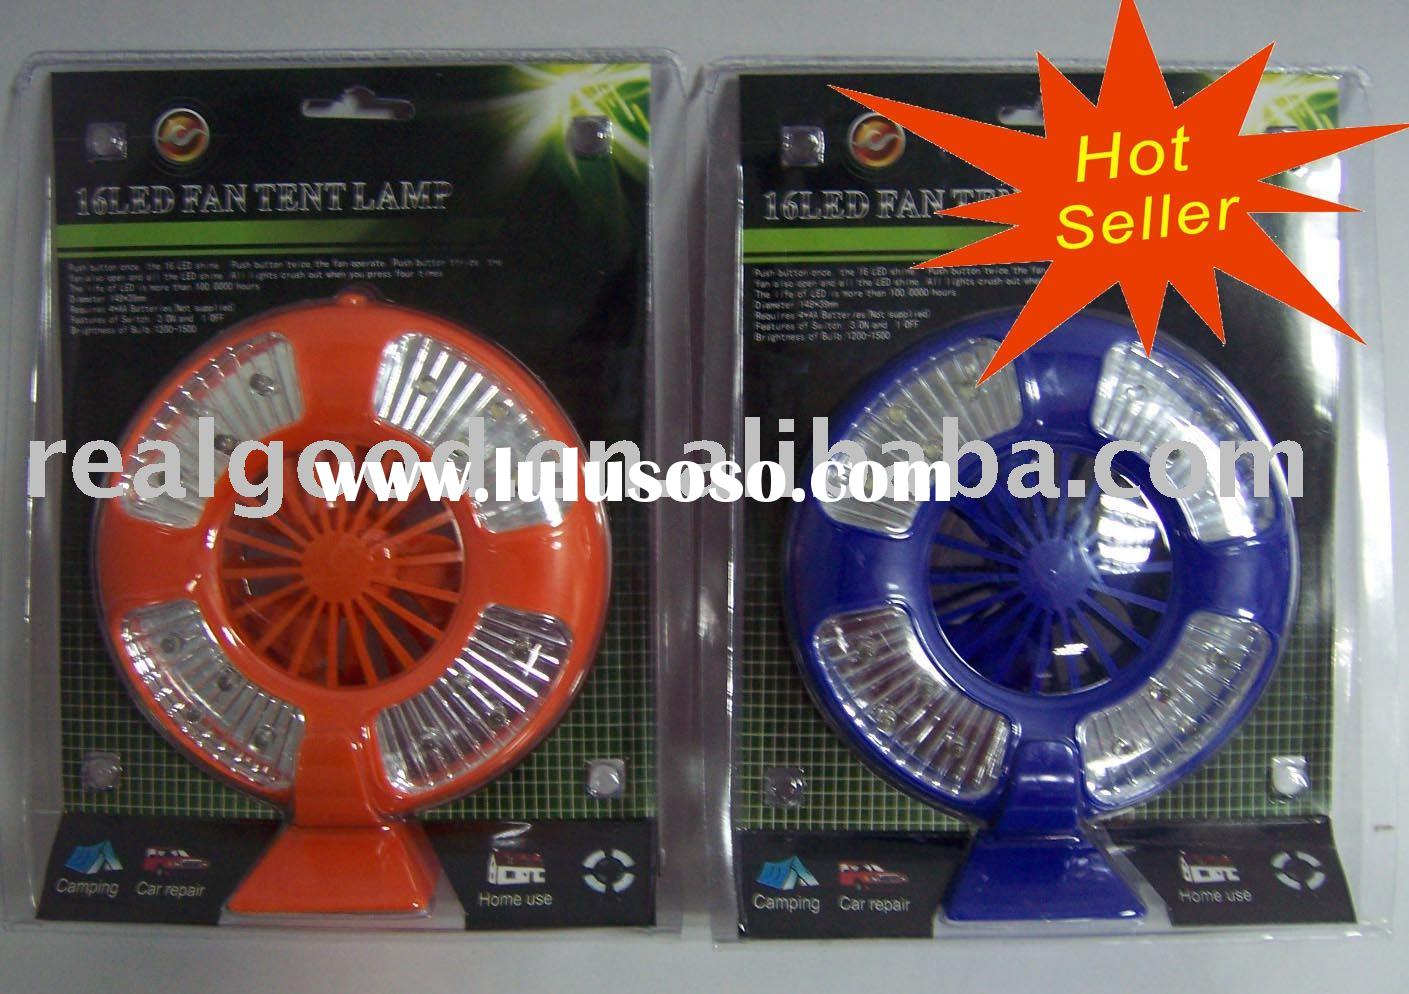 16 Led Fan Tent Lamp / Camping Light / Tent Light